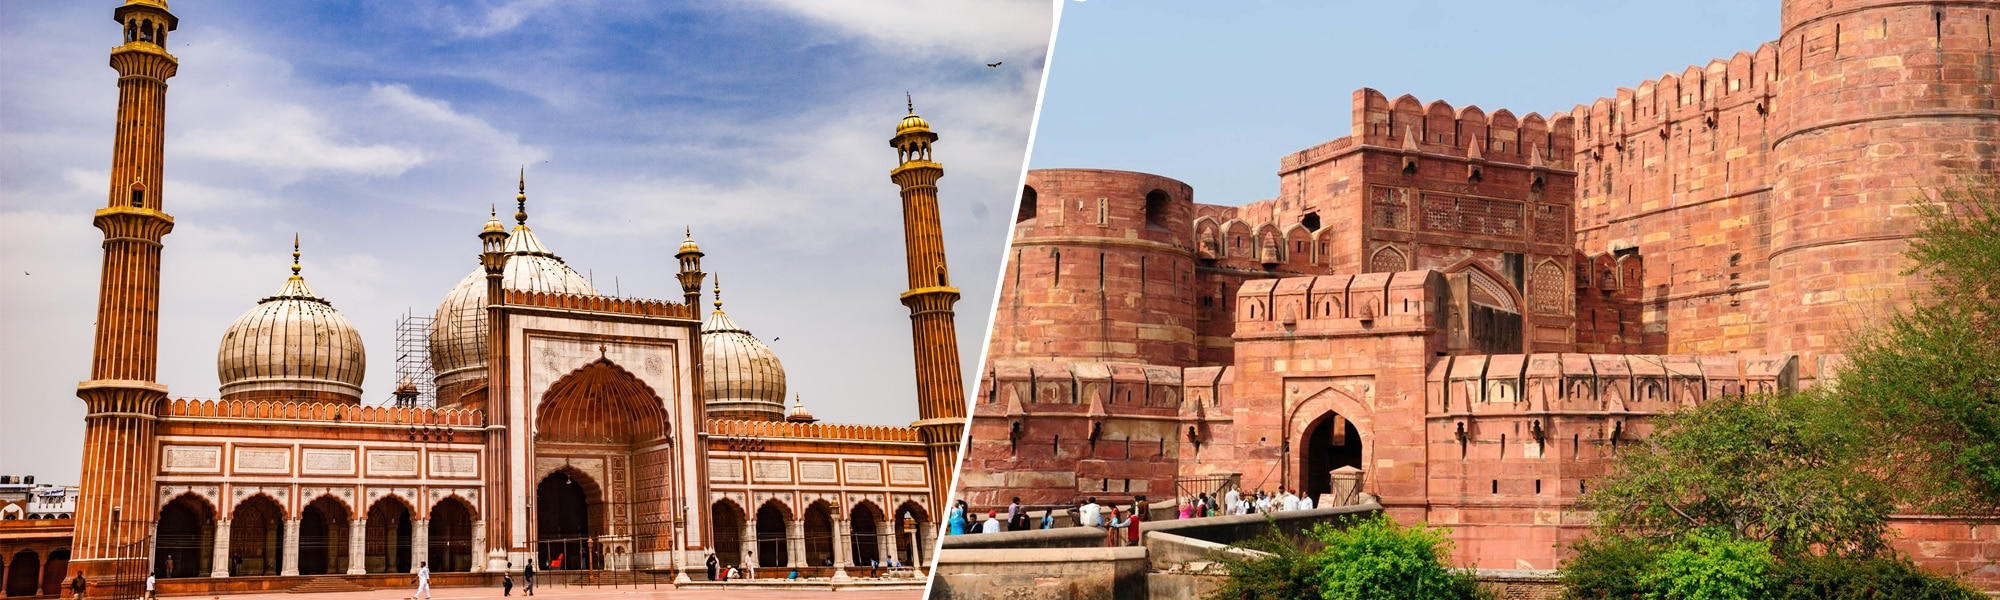 Delhi & Agra – The Golden Triangle Package Tour